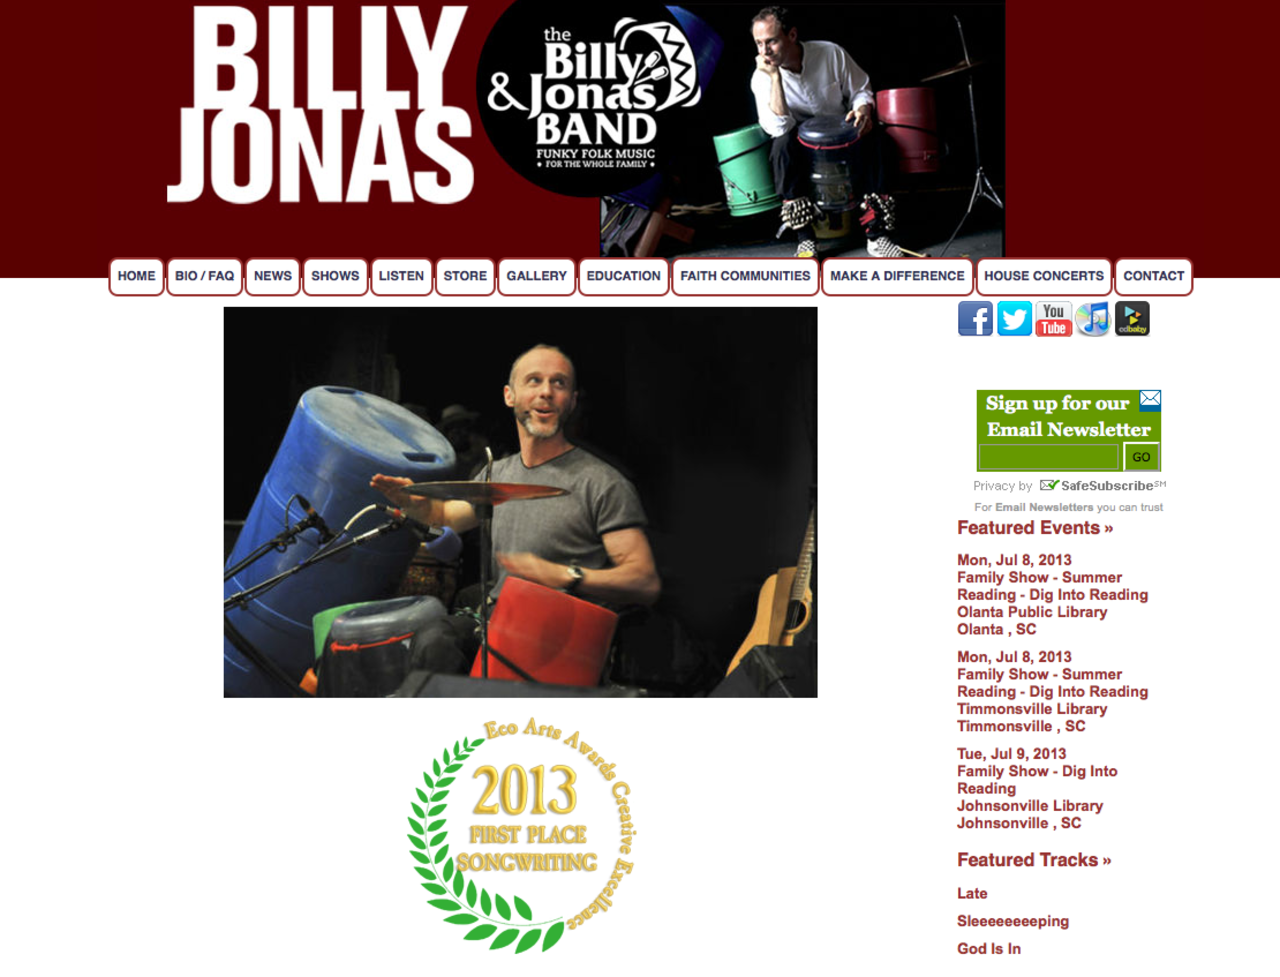 Billy Jonas